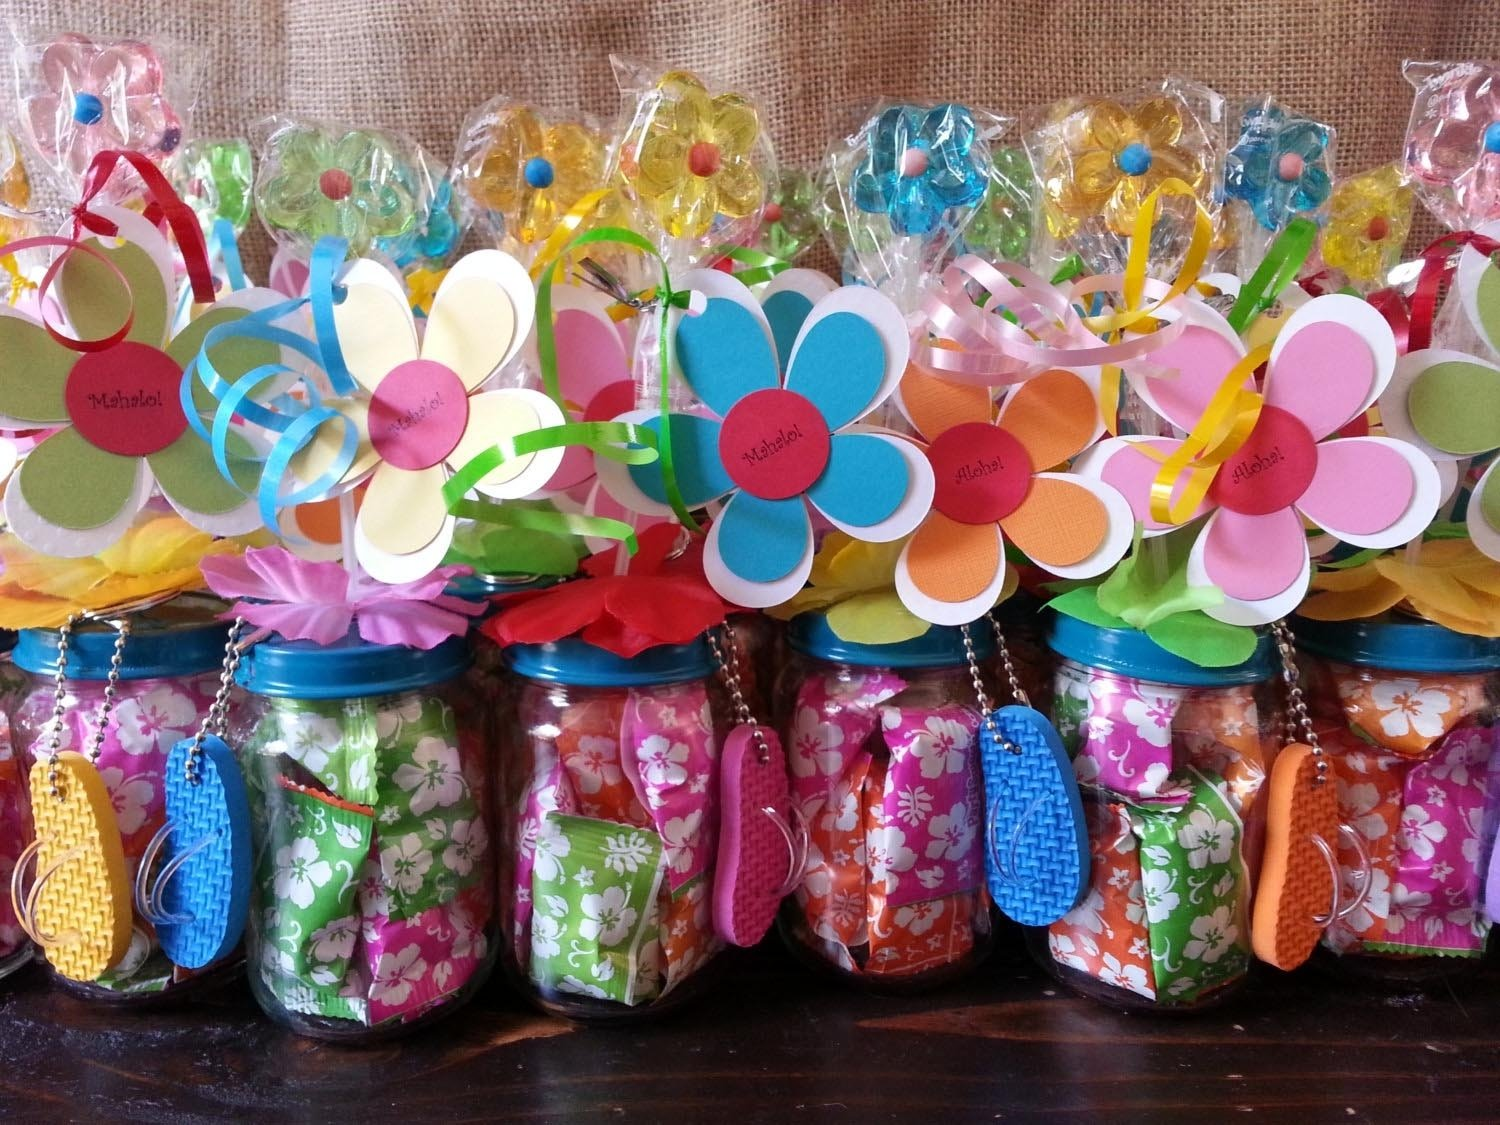 10 Spectacular Goodie Bag Ideas For Kids Birthday Parties amused goodie bag ideas for kids birthday parties 74 with kids 1 2021